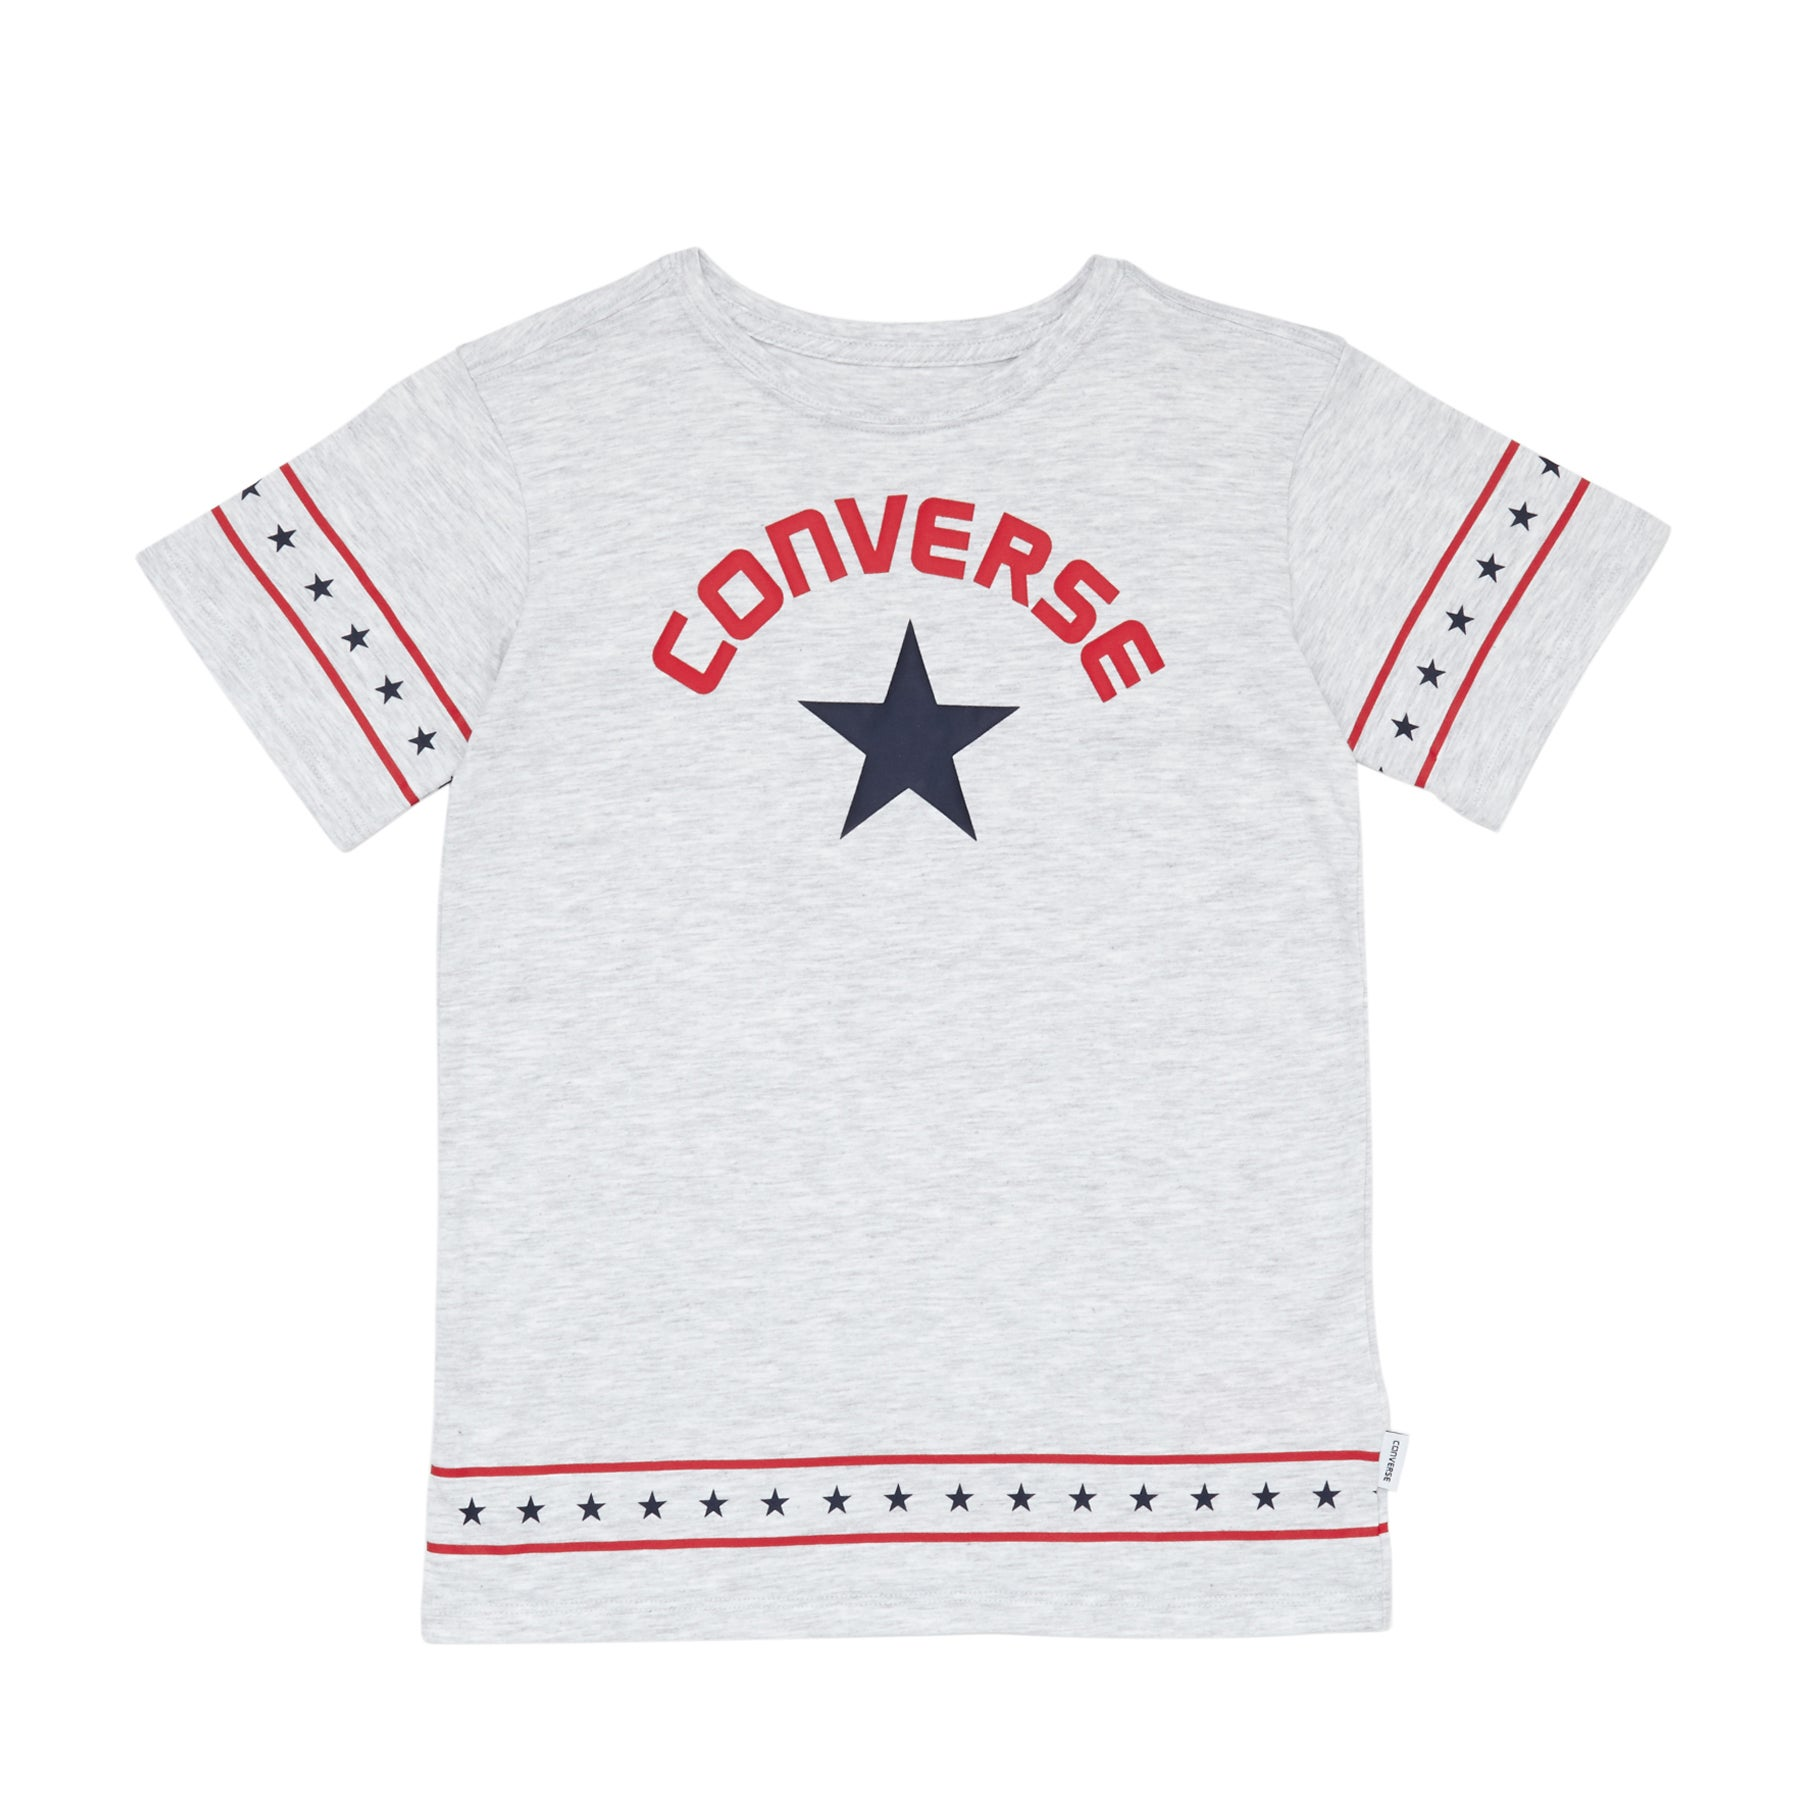 Camiseta de manga corta Girls Converse Star Trim - Lunar Rock Heather